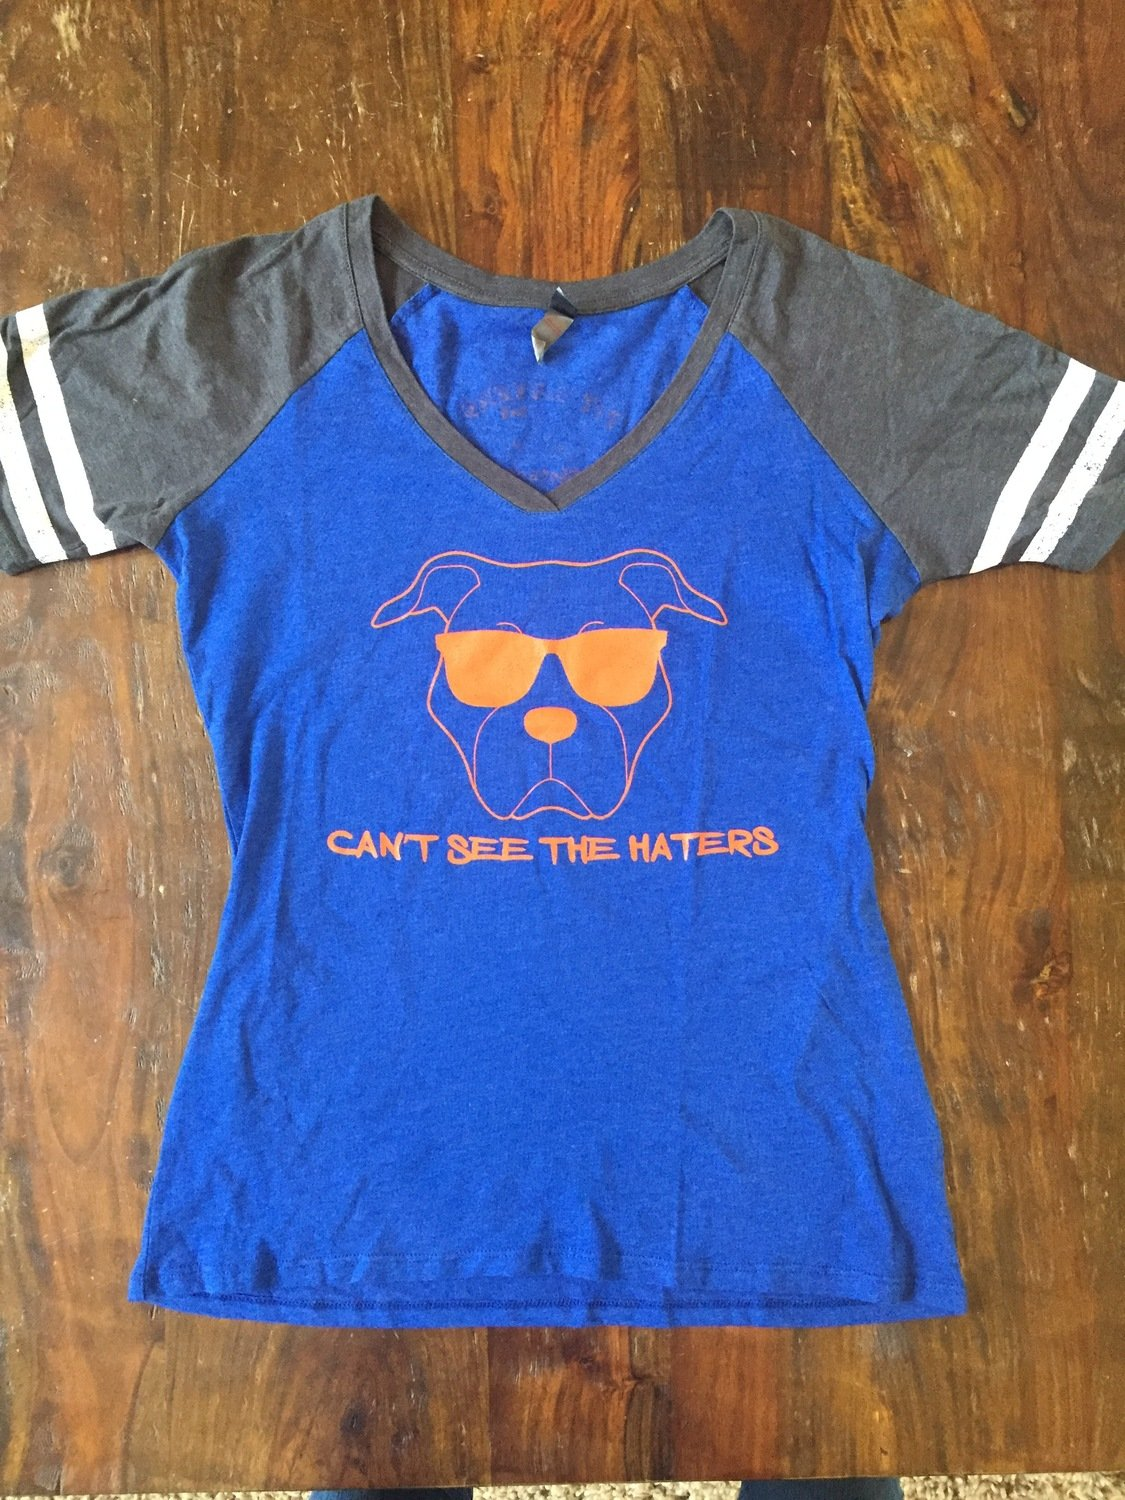 Ladies Vneck- Can't See the Haters- Blue and Gray with Orange writing - Medium